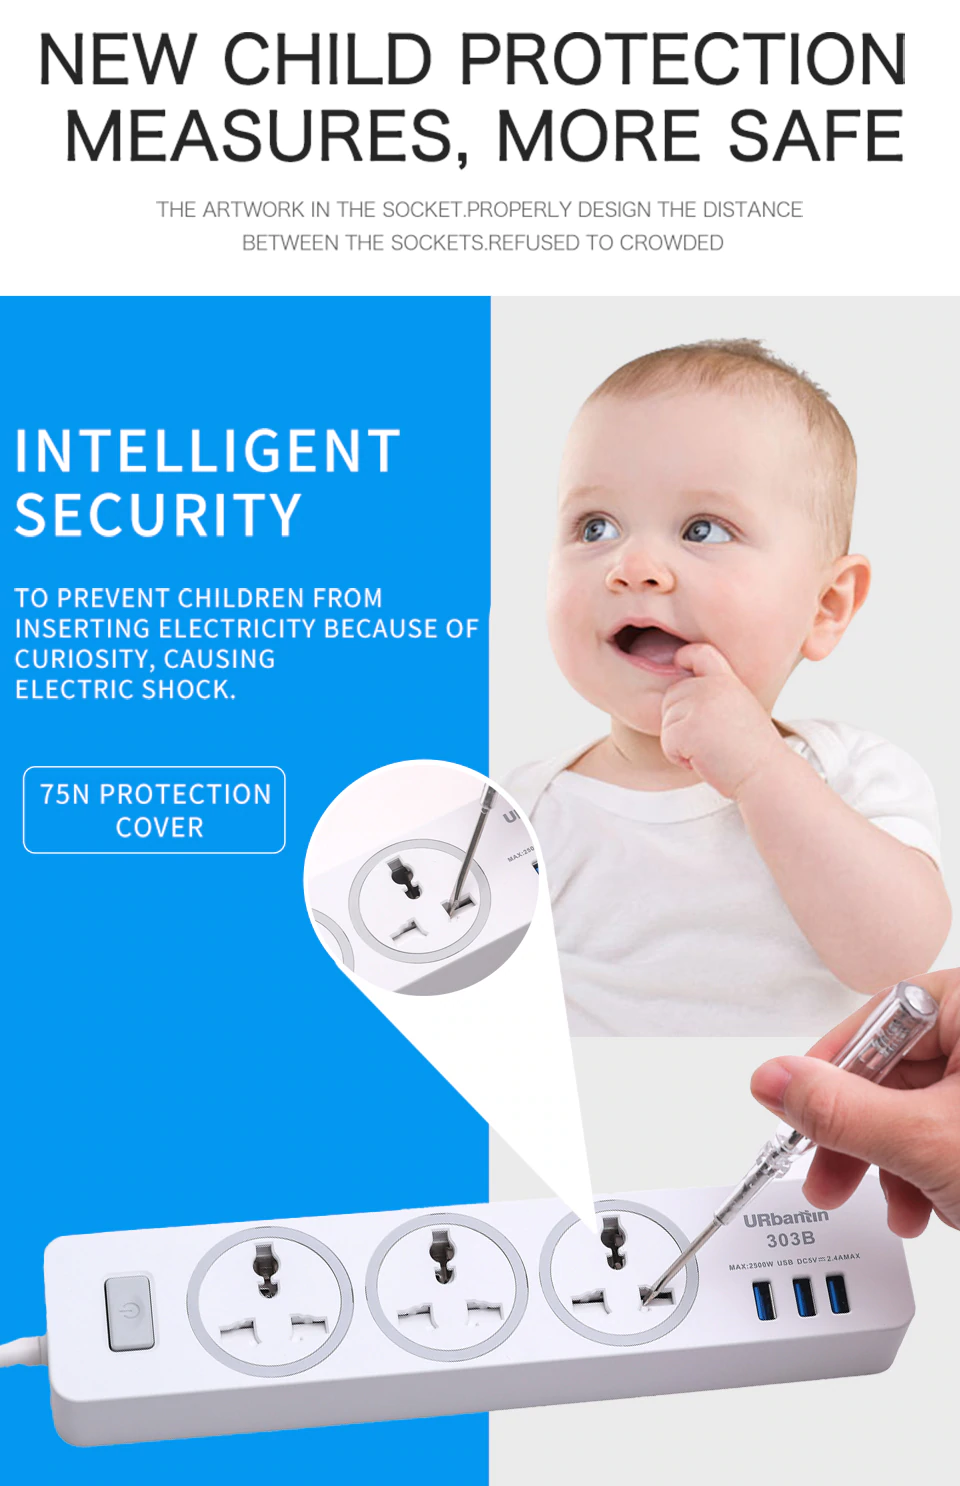 Child Protection Measures Of Power Strip Socket